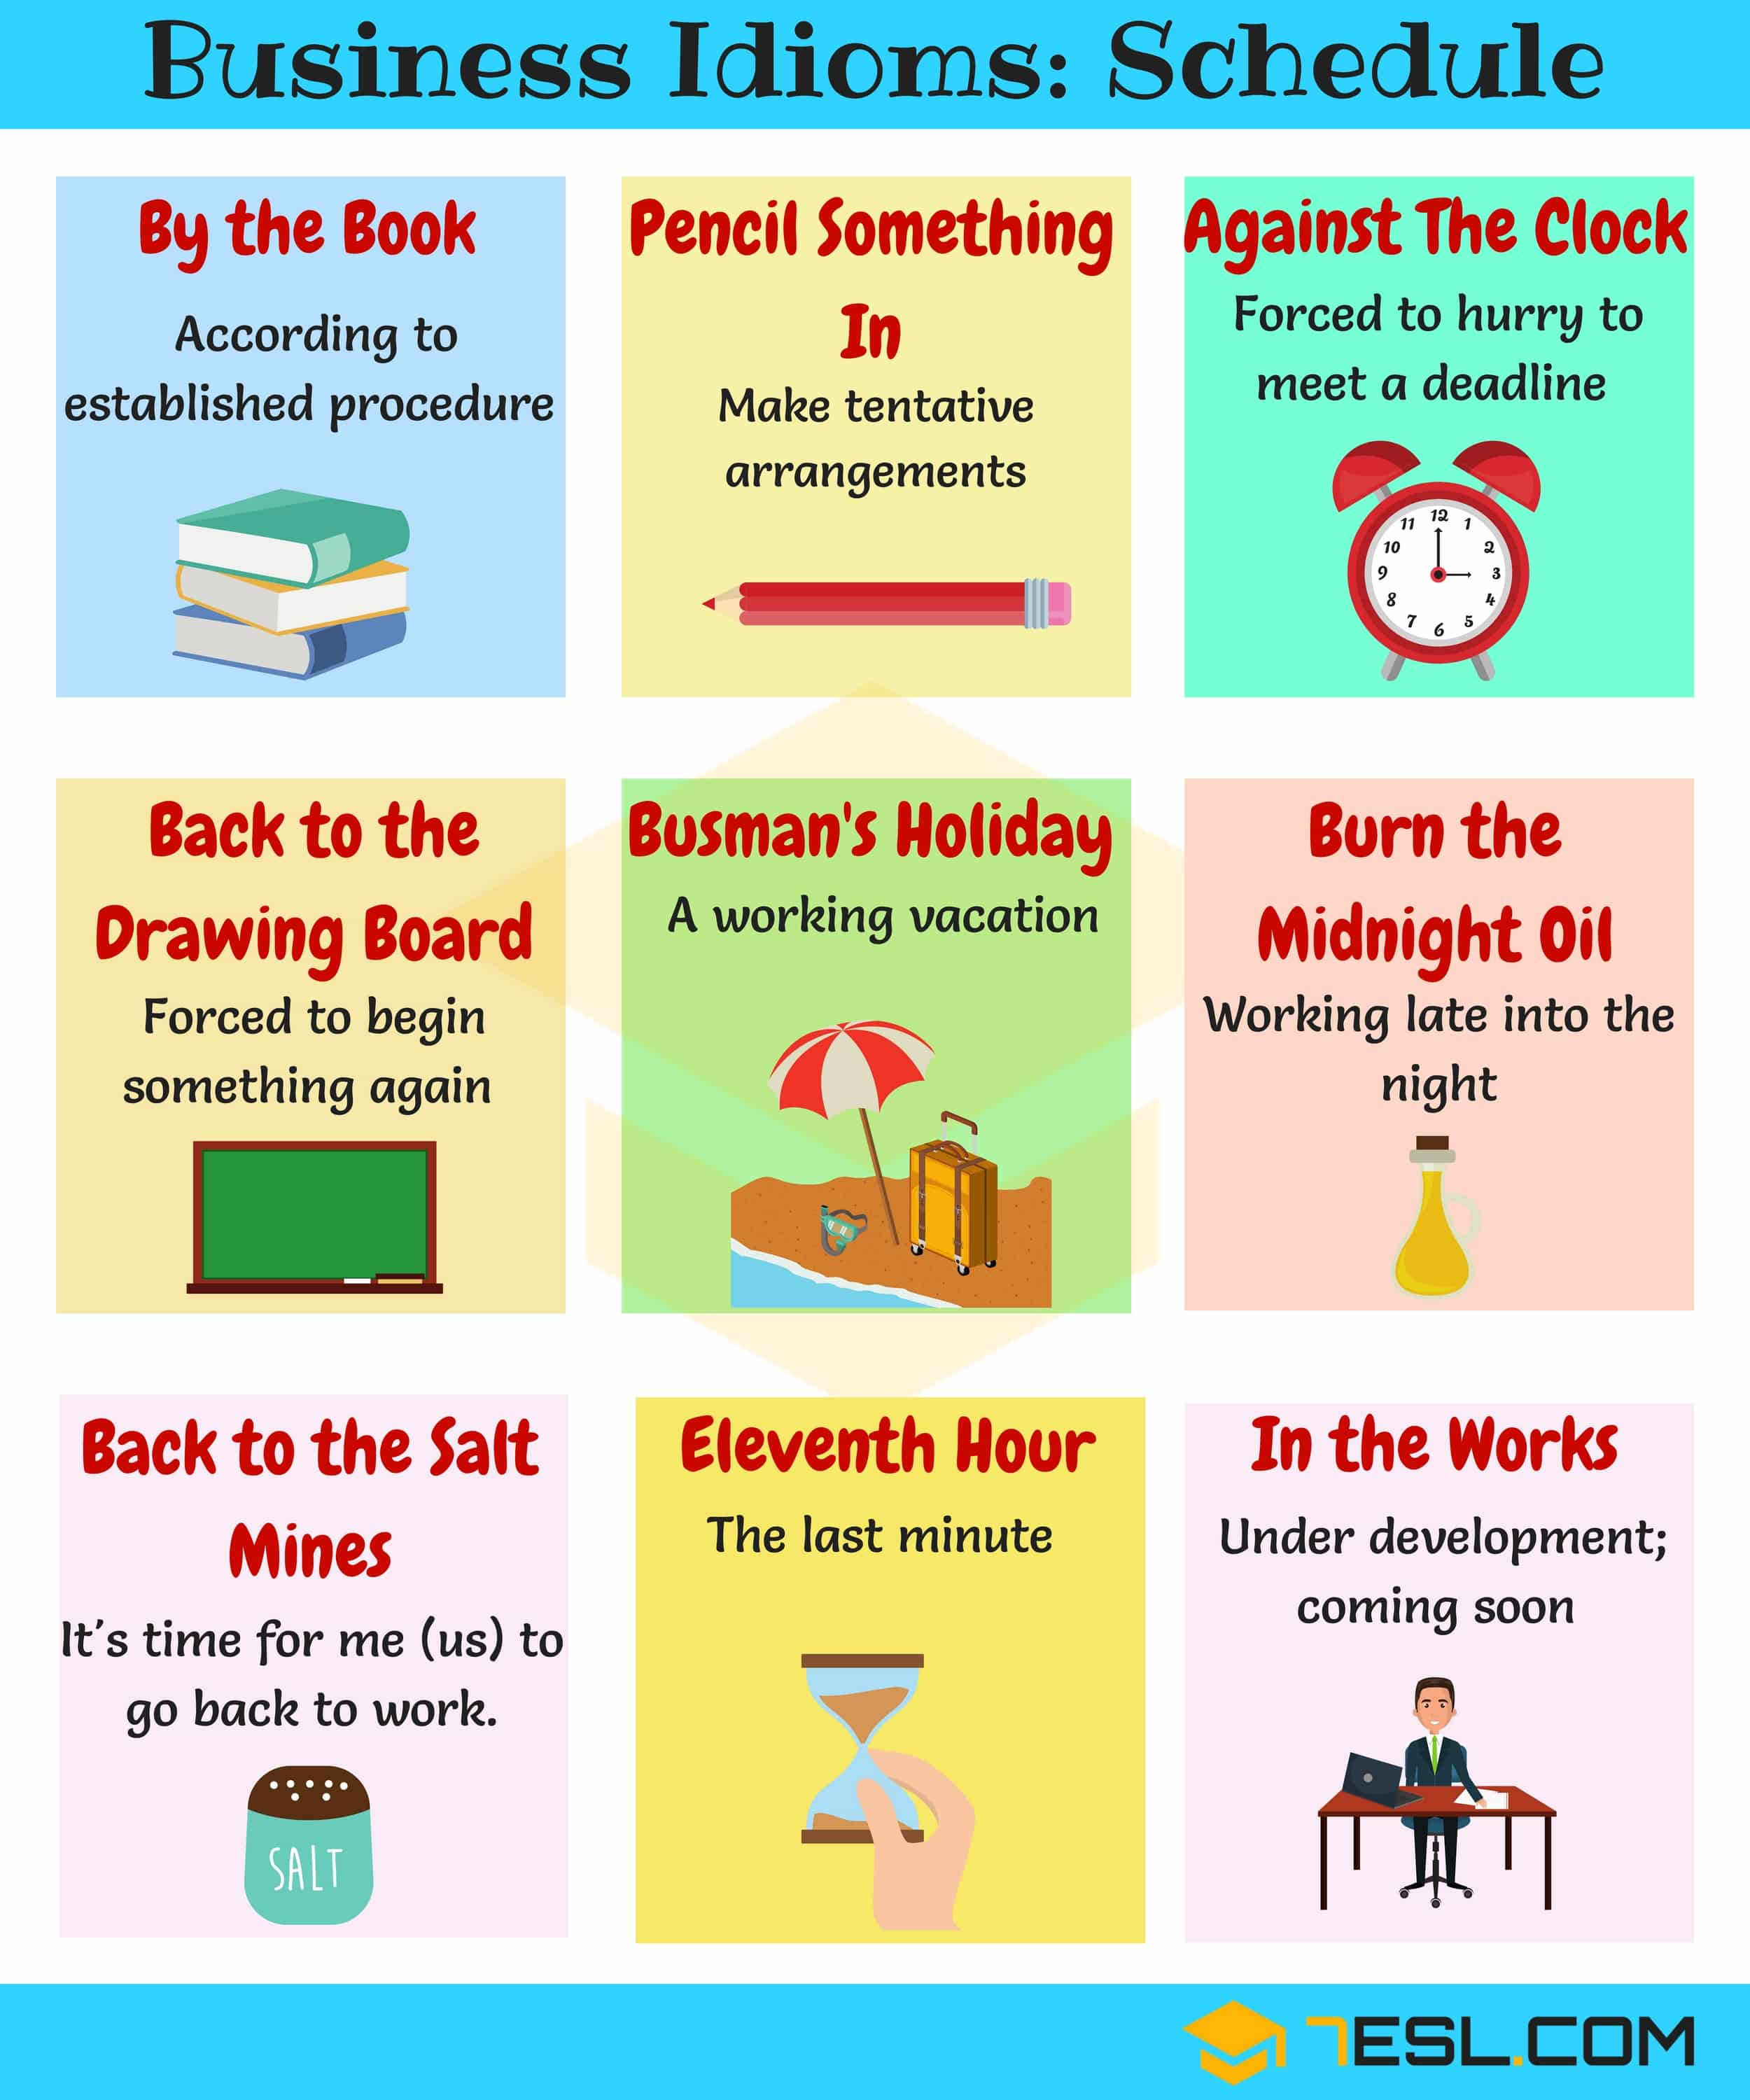 Common business expressions and idioms for business scheduling | Business Idioms Image 7